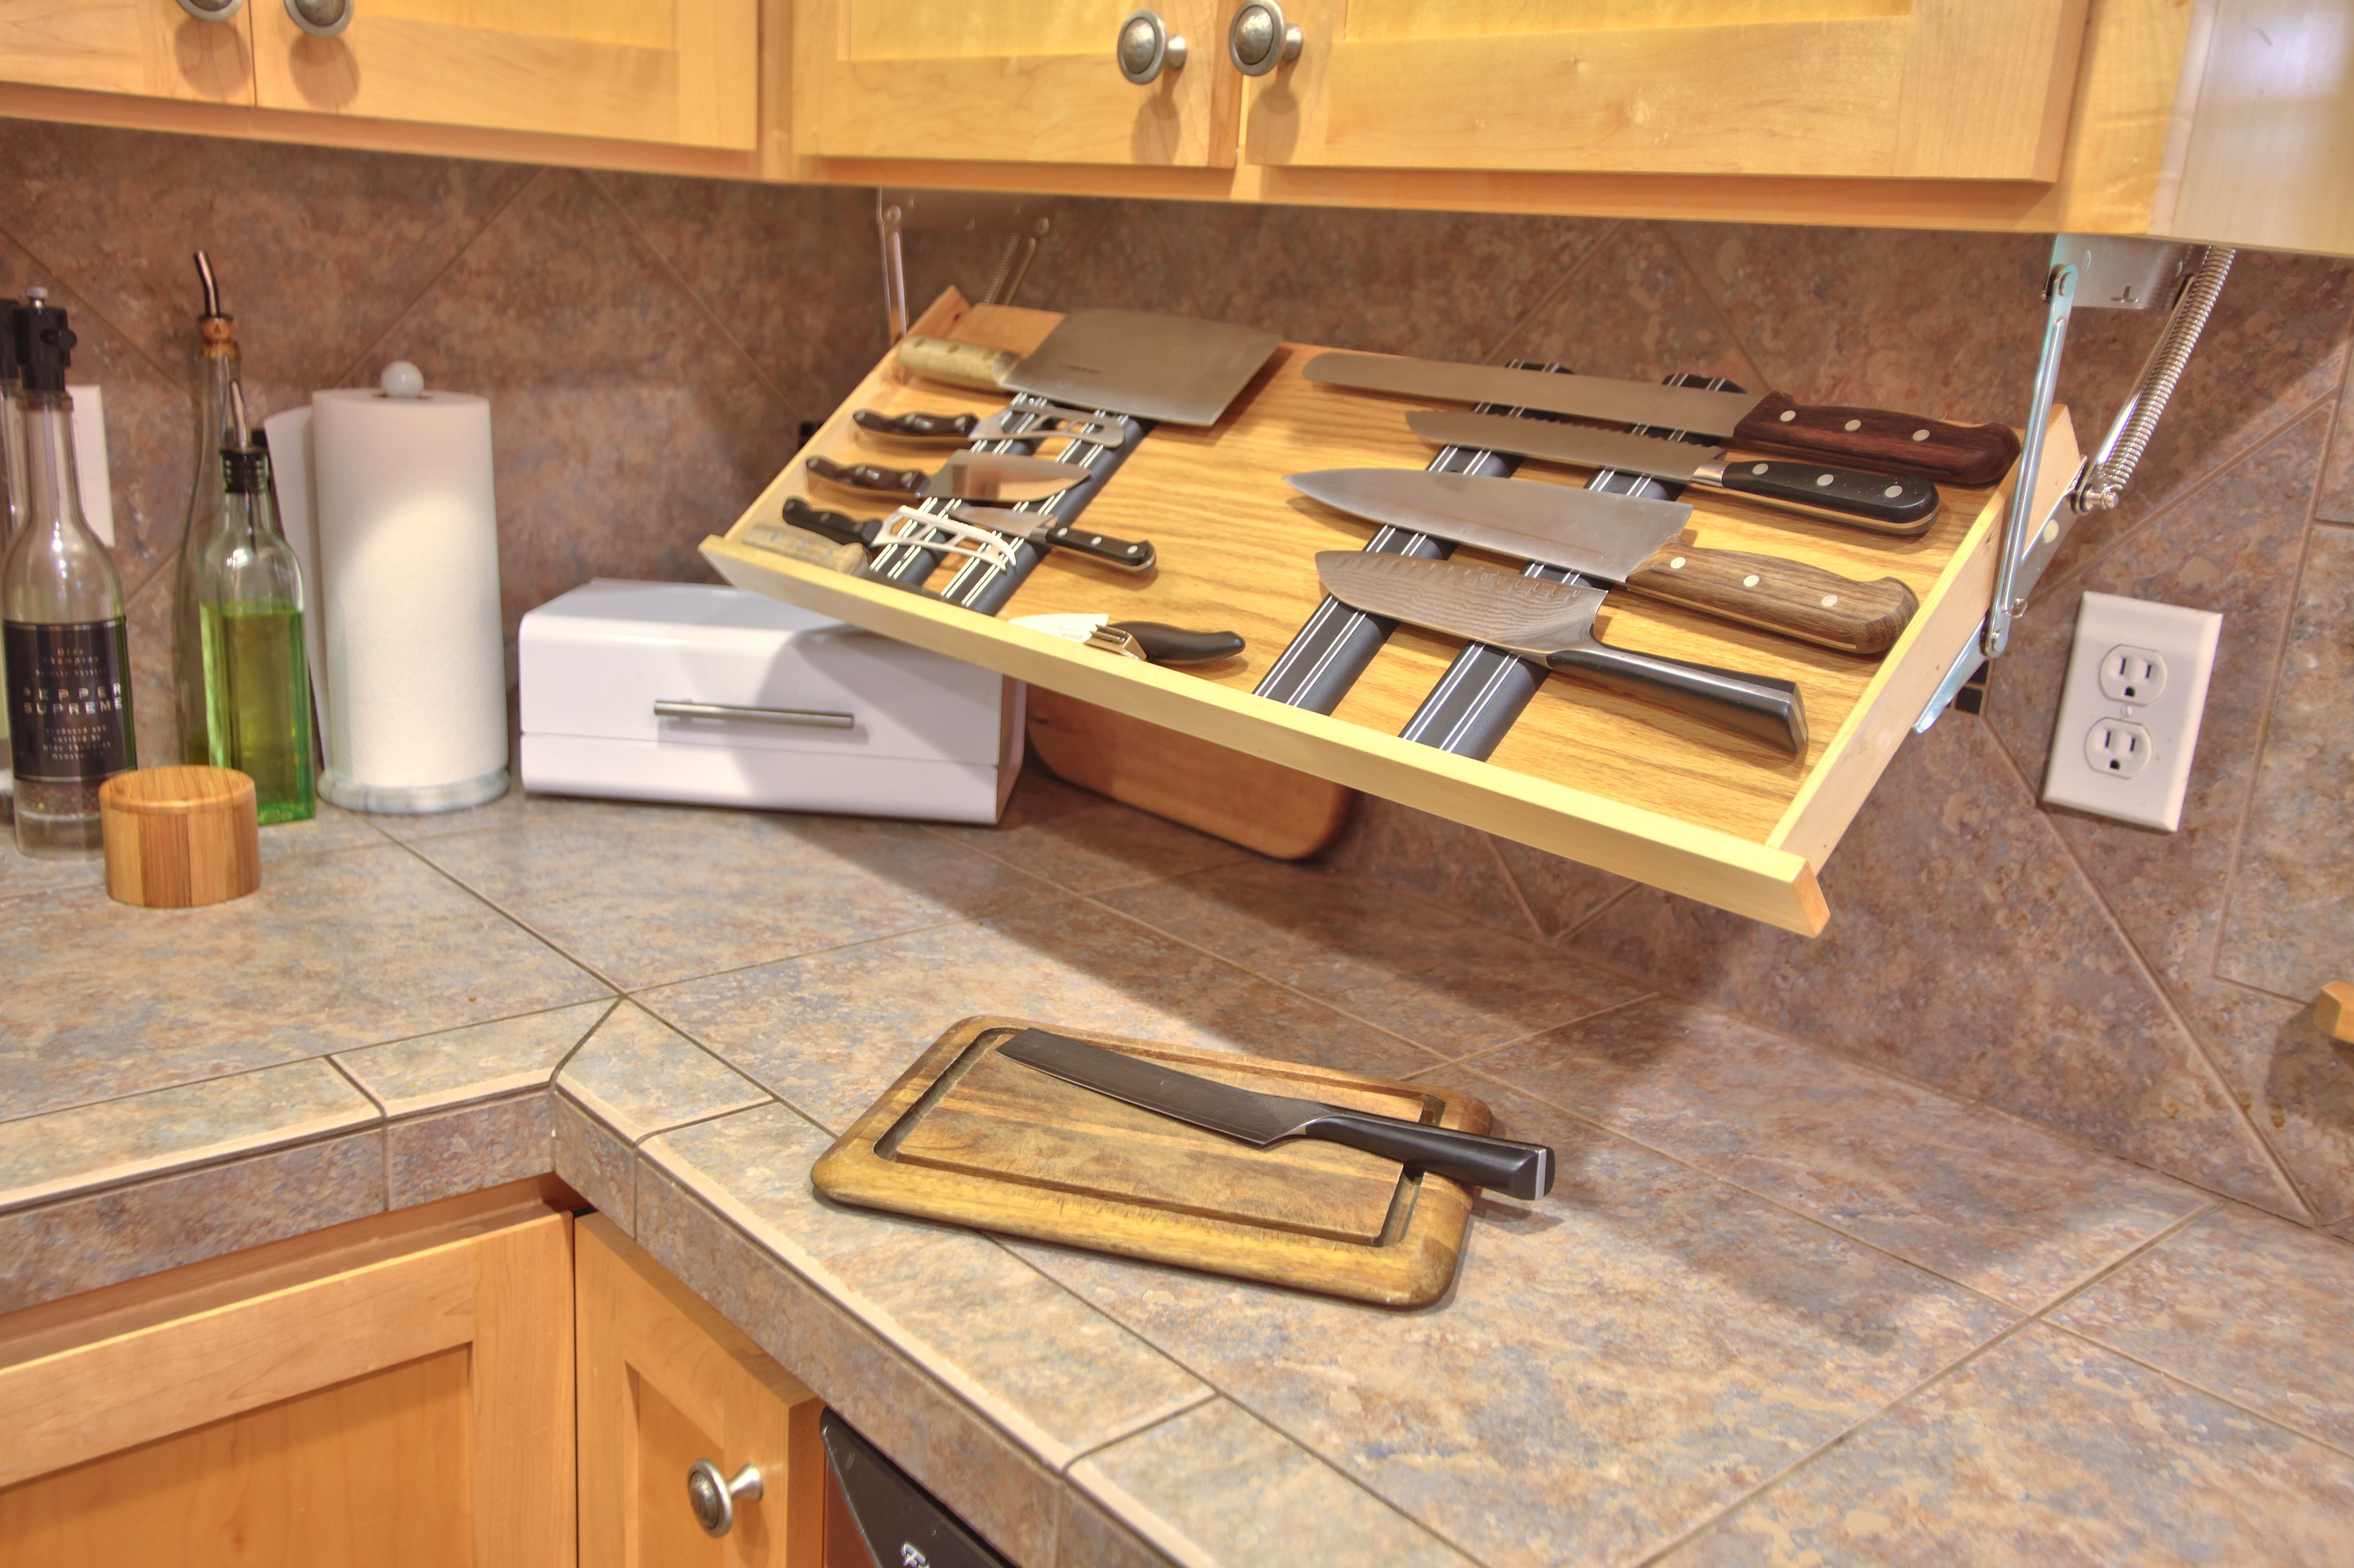 Get The Knife Out Under Counter Drop Down Knife Storage Clever Kitchen Storage Knife Storage Kitchen Knife Storage